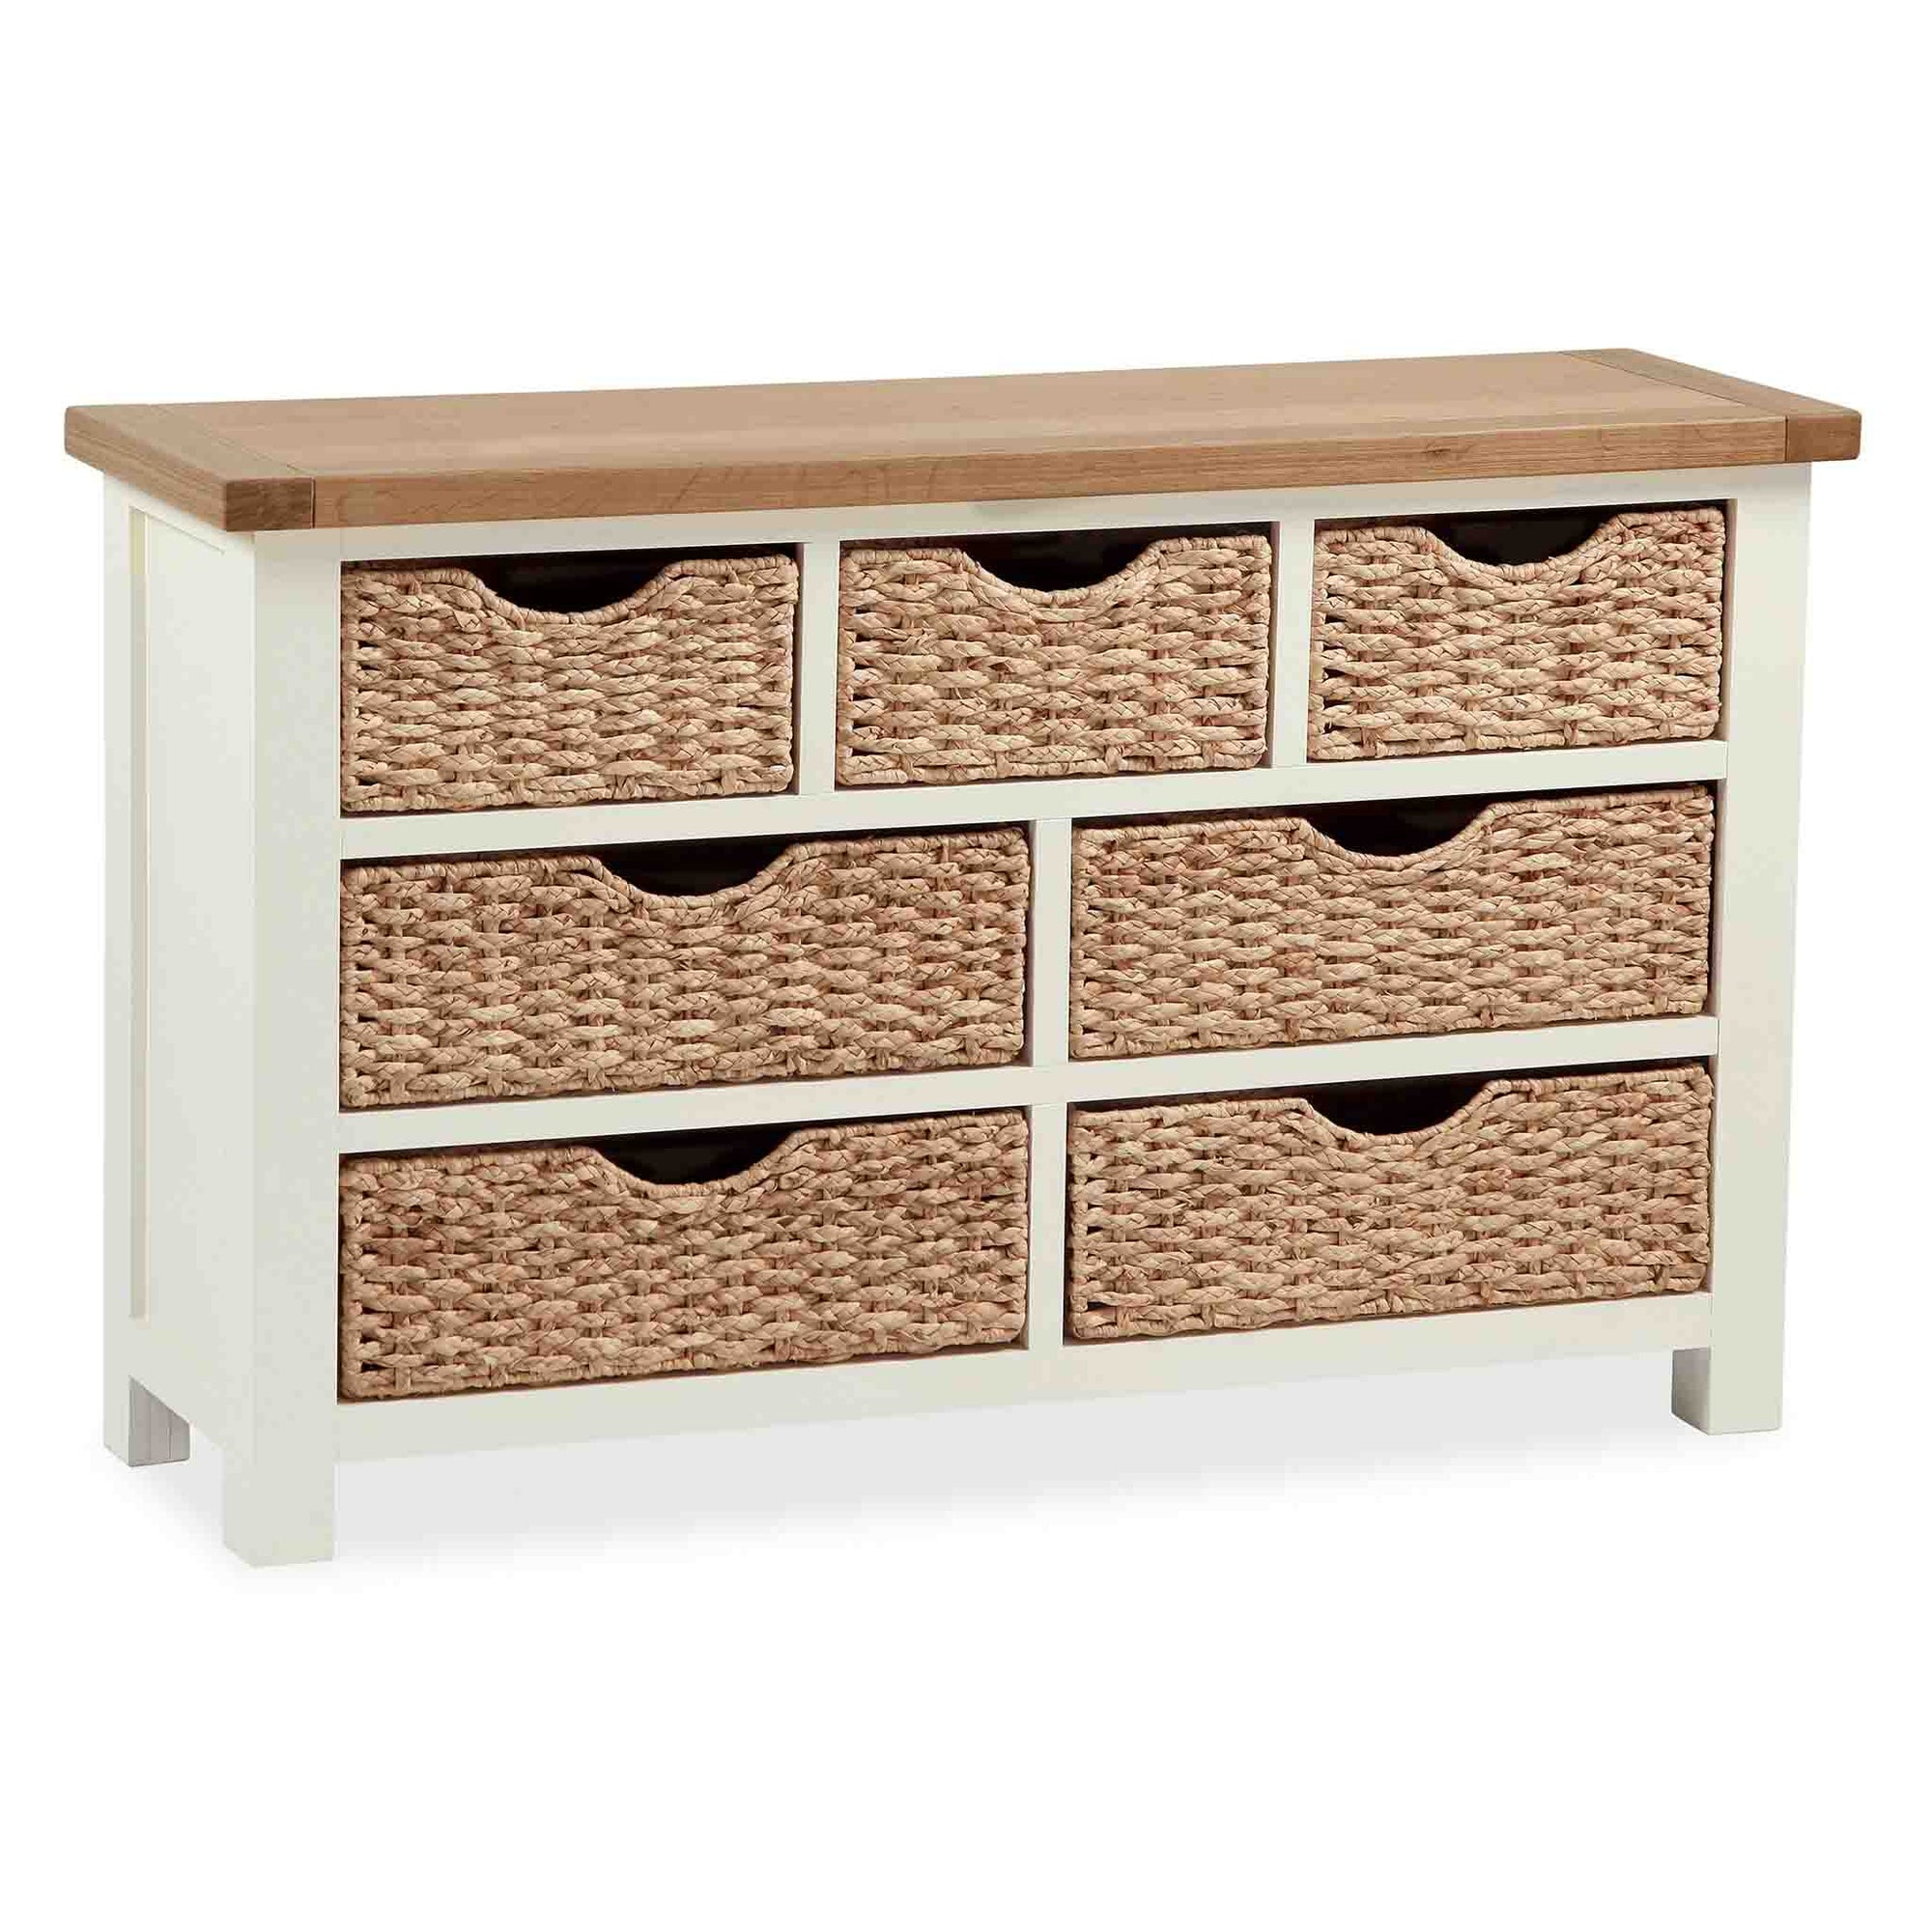 The Daymer Cream Oak Storage Chest with Baskets from Roseland Furniture